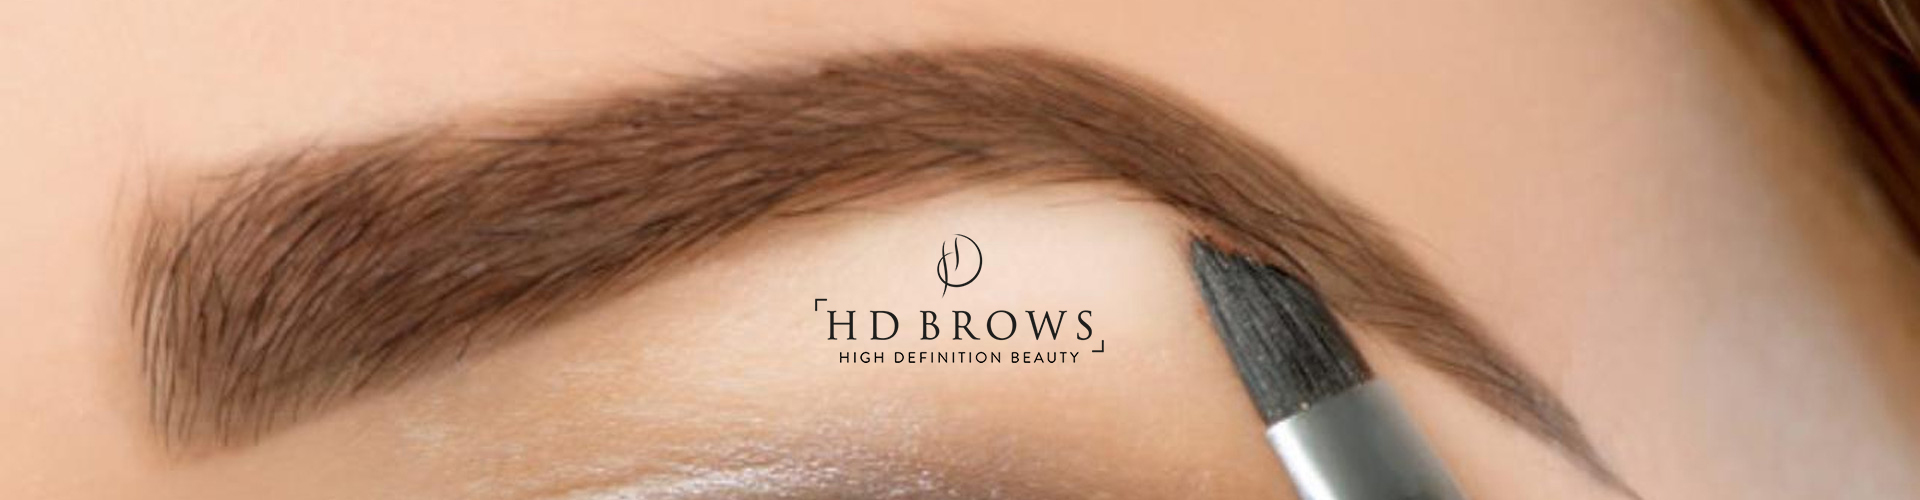 HD Brows | Flawless Faces Hair & Beauty